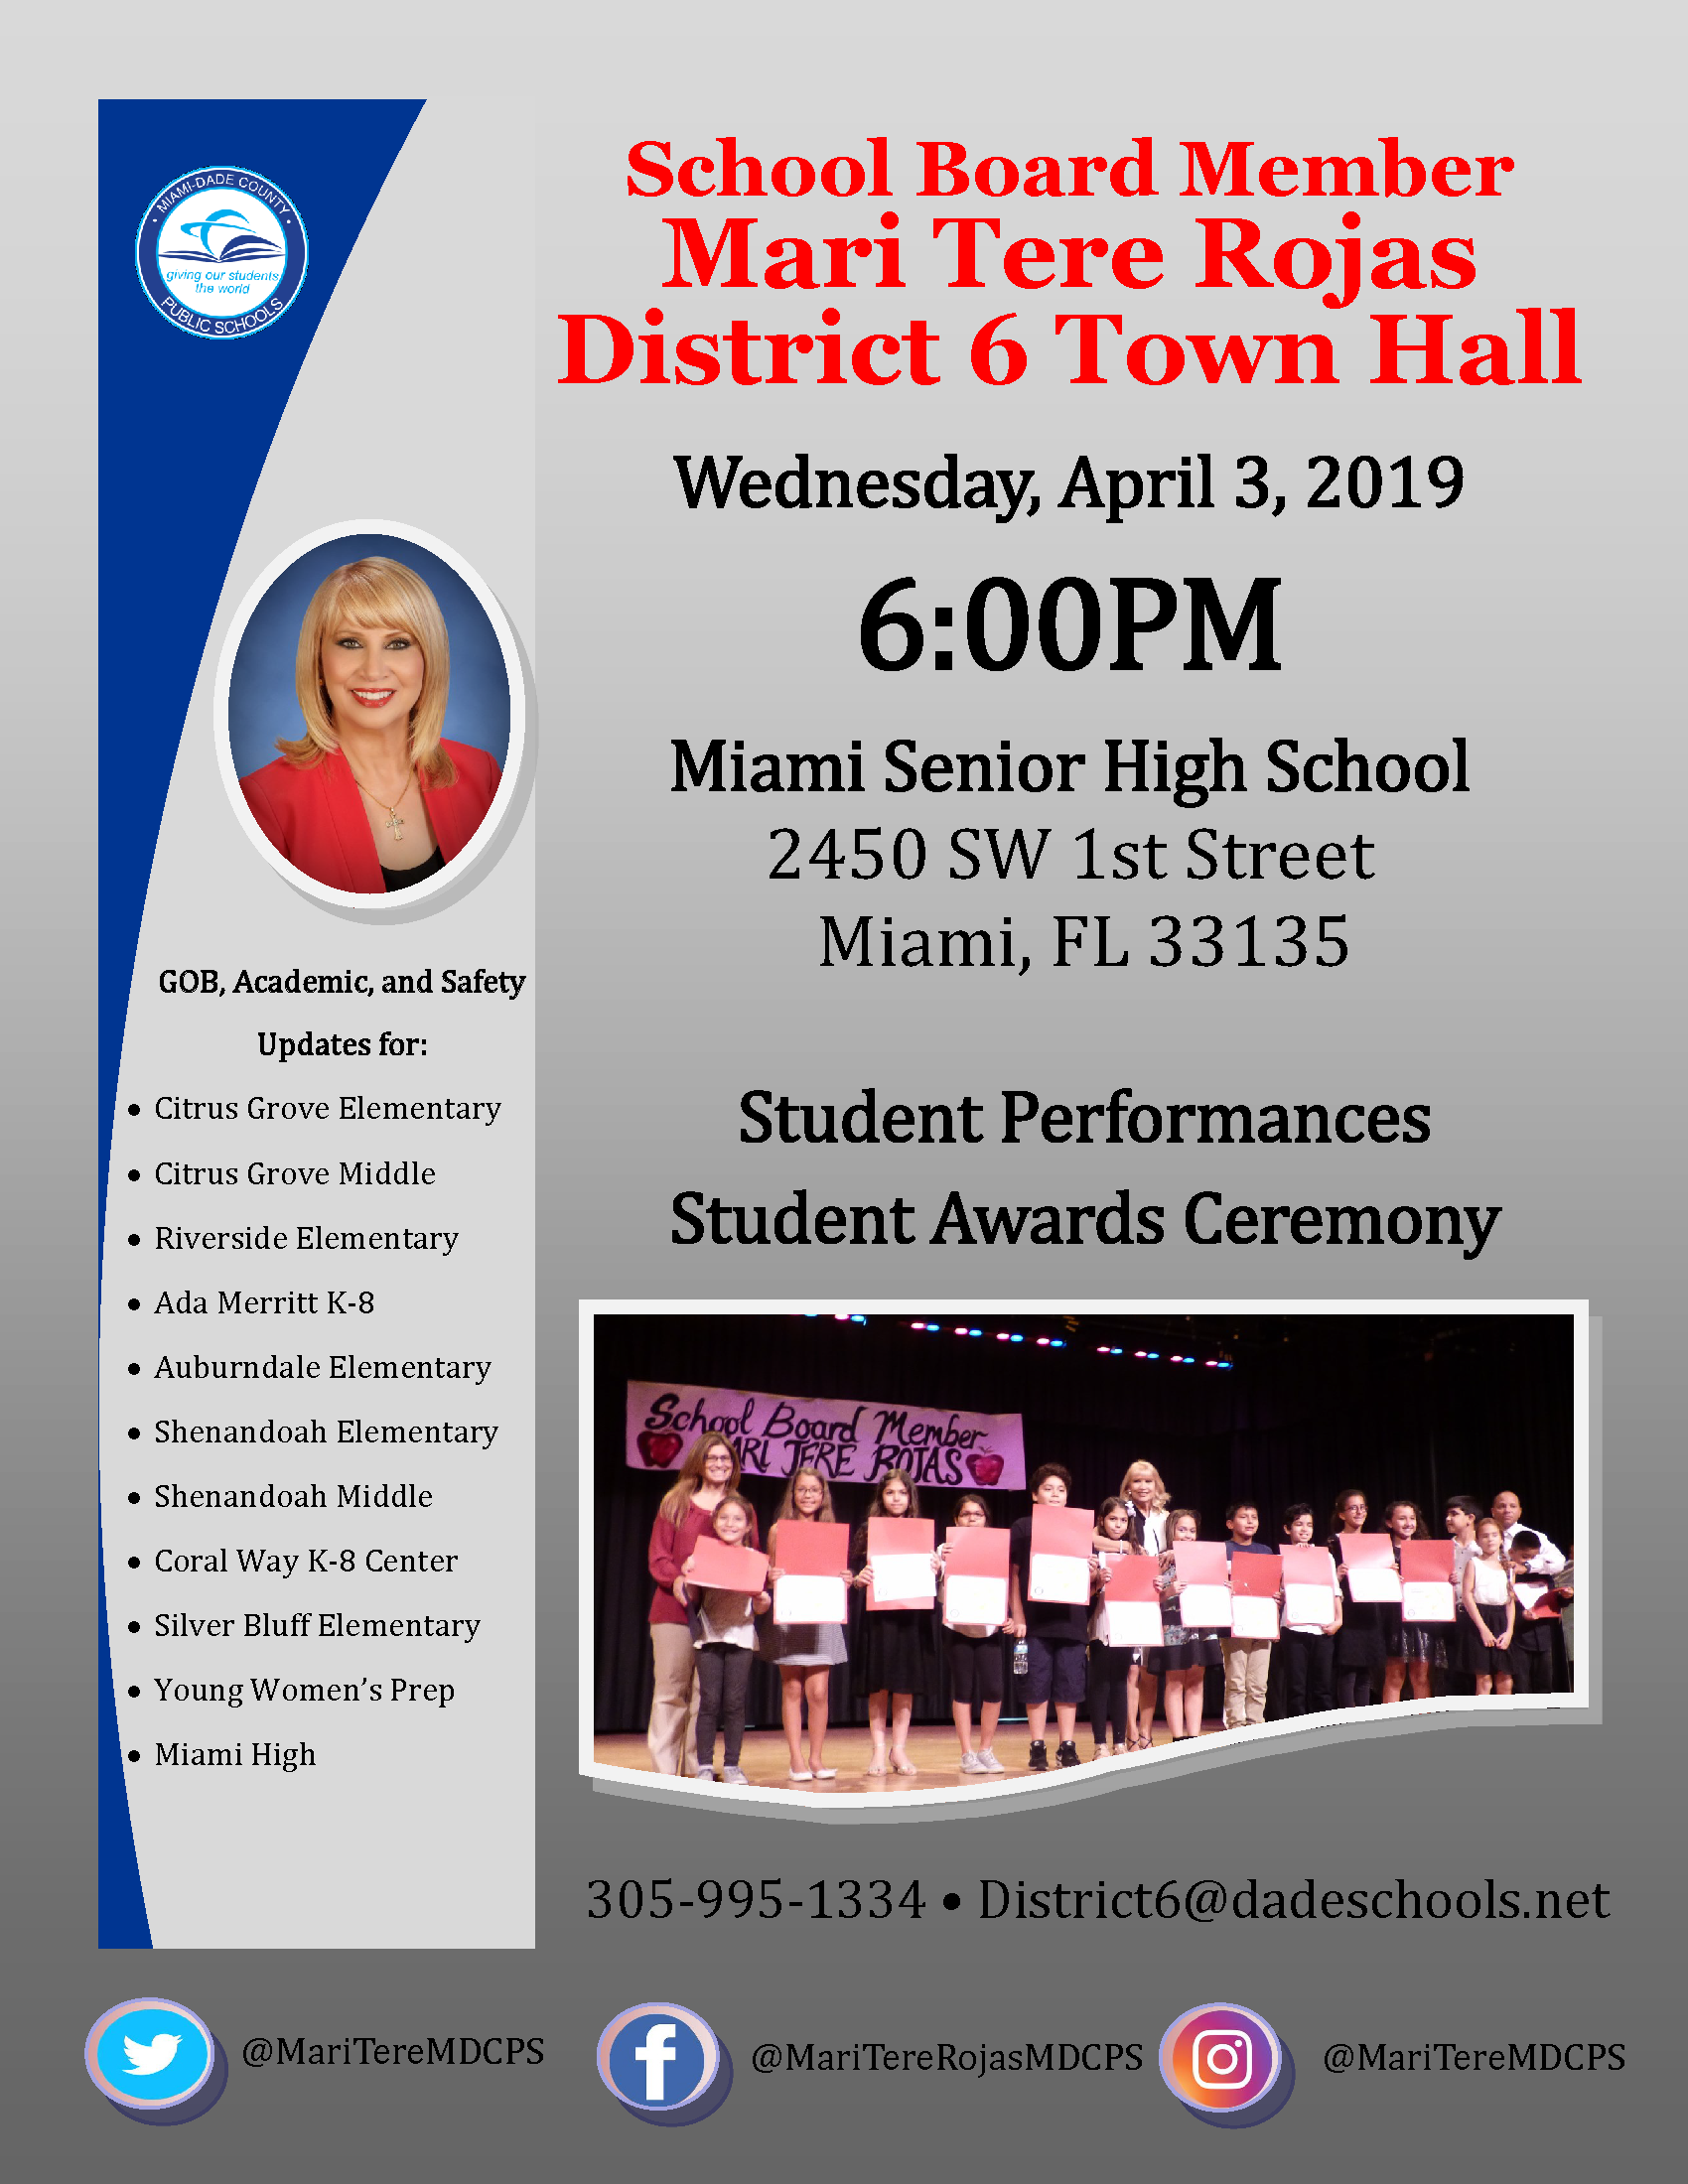 District 6 Town Hall Meeting @ Miami Senior High School